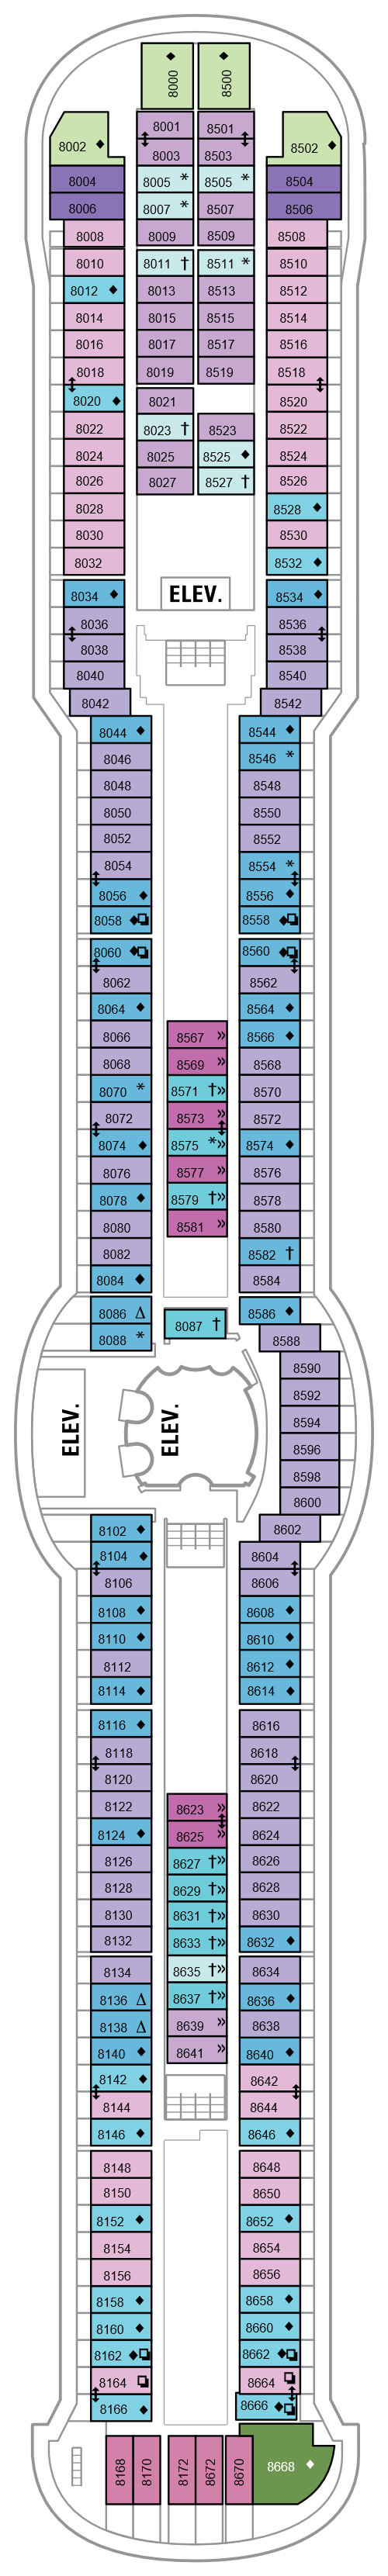 Brilliance Of The Seas Deck 8 layout